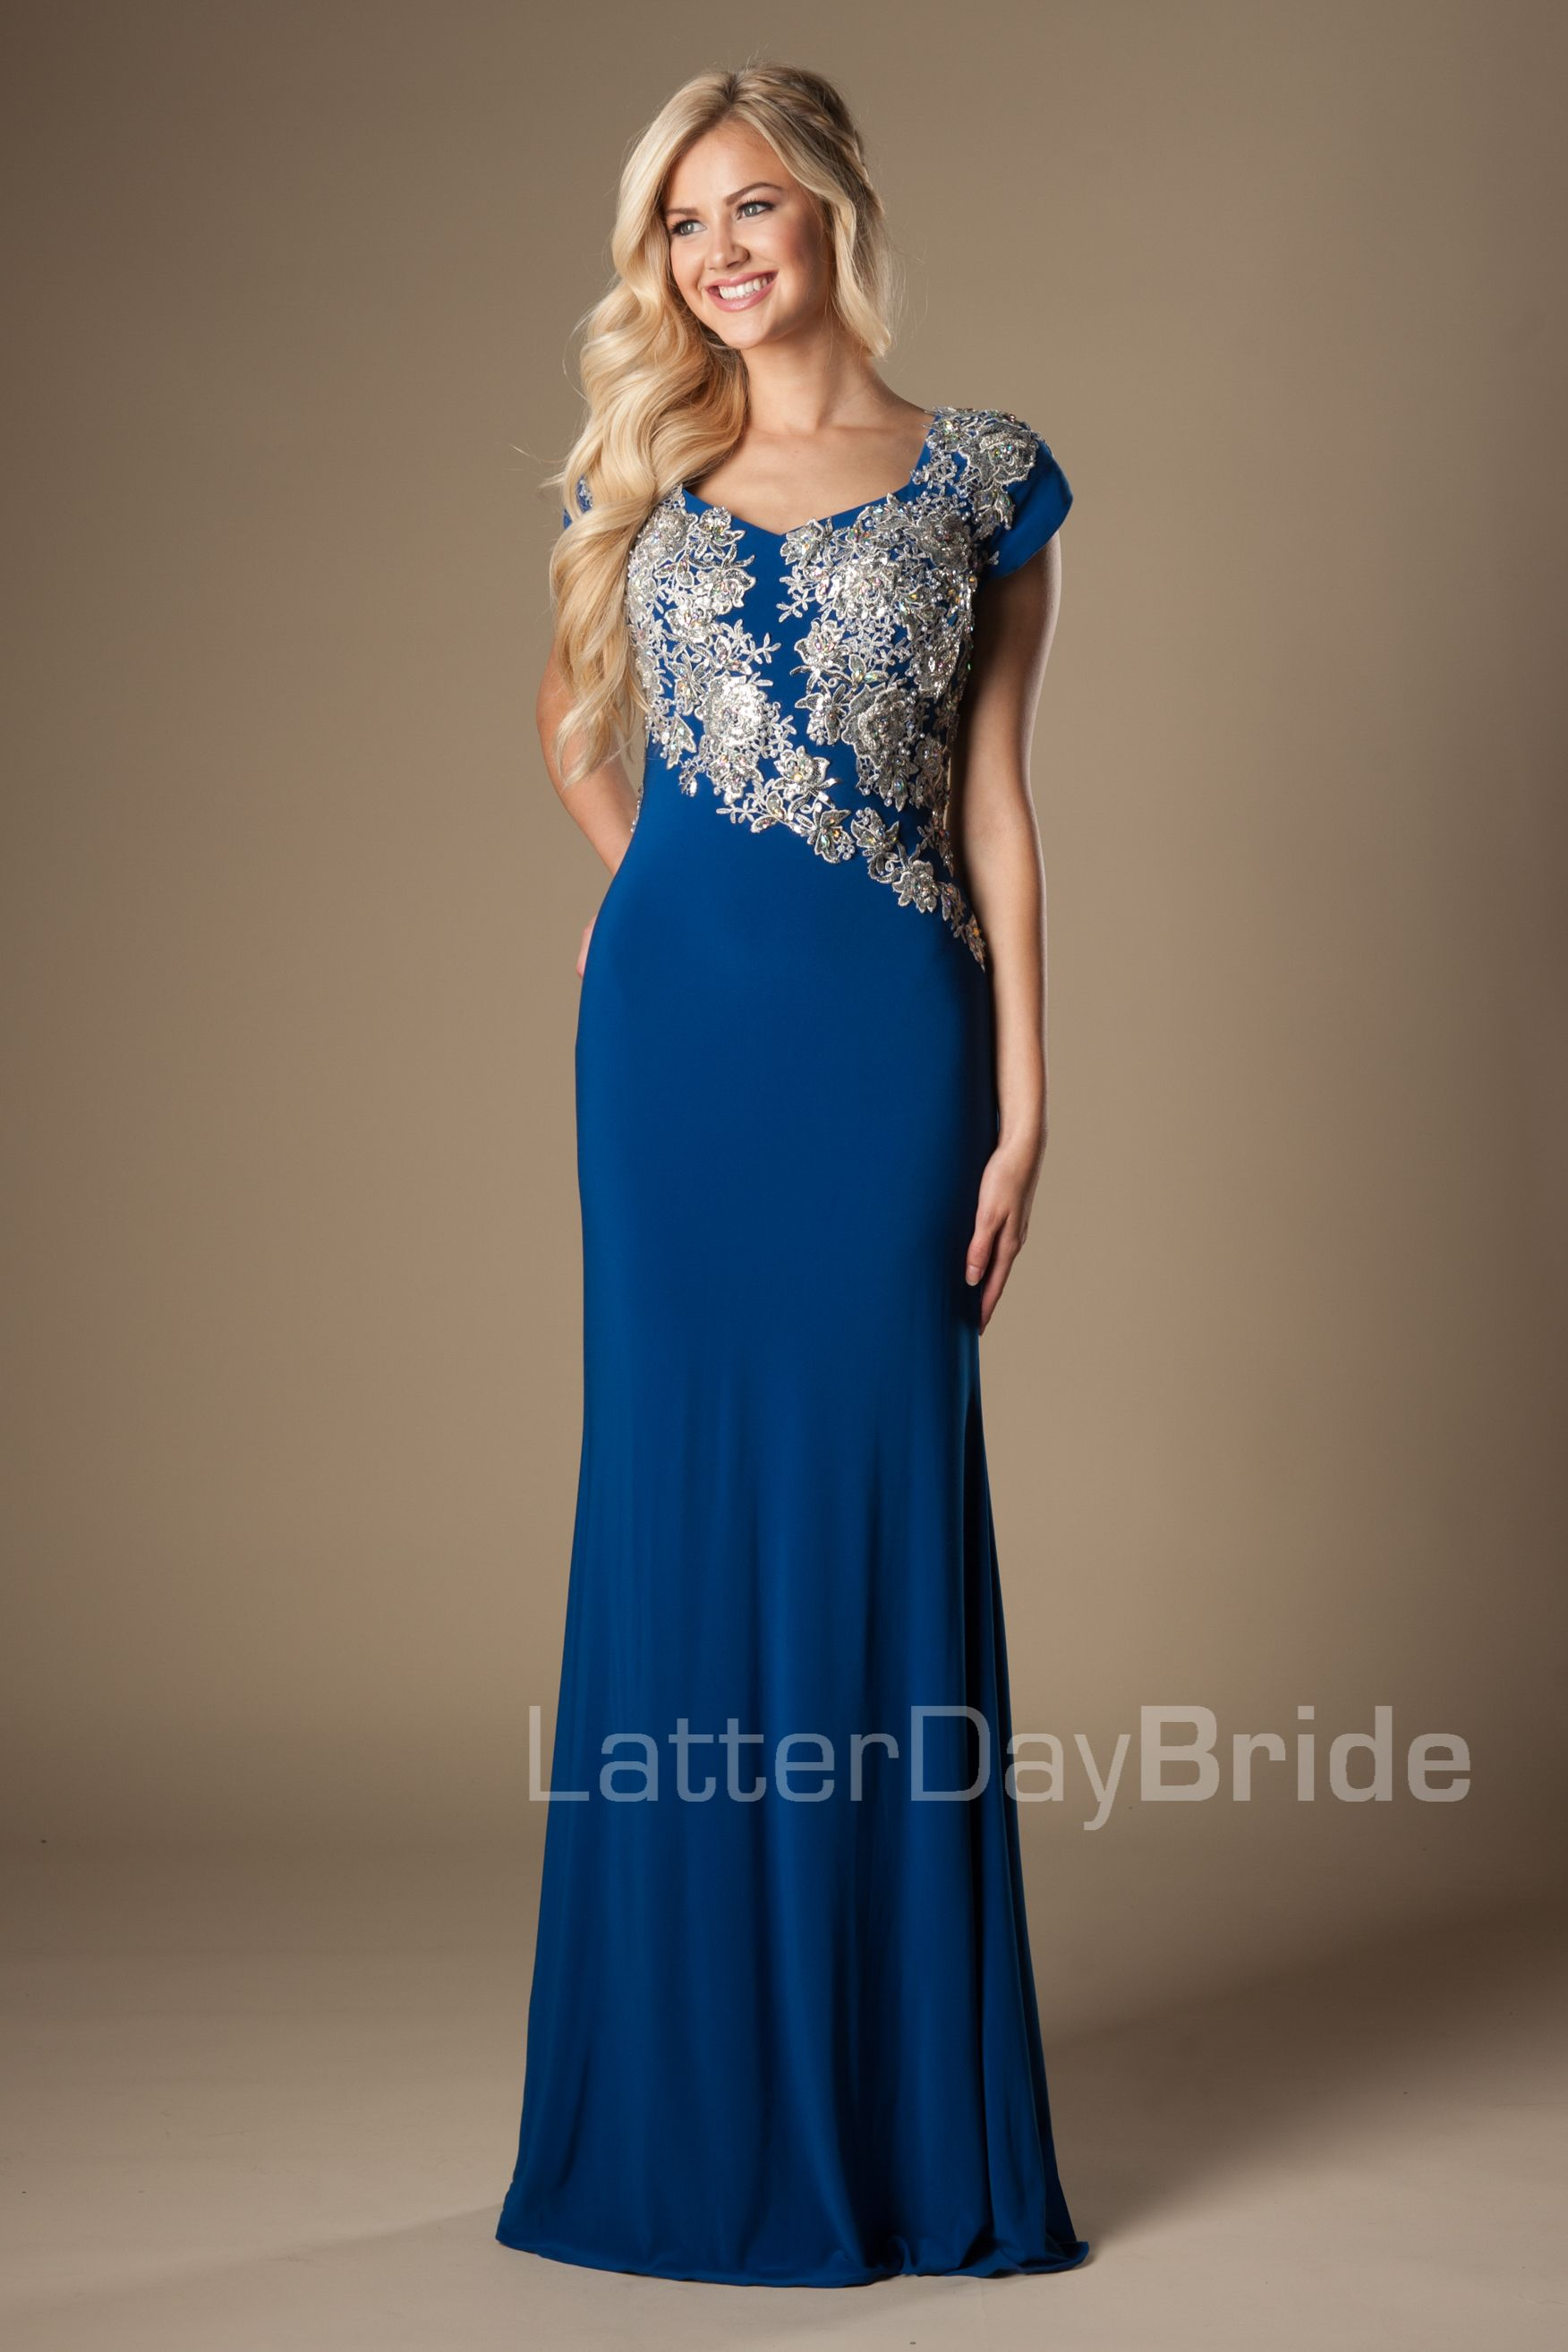 Sheath prom chase dressesclothes pinterest prom modest